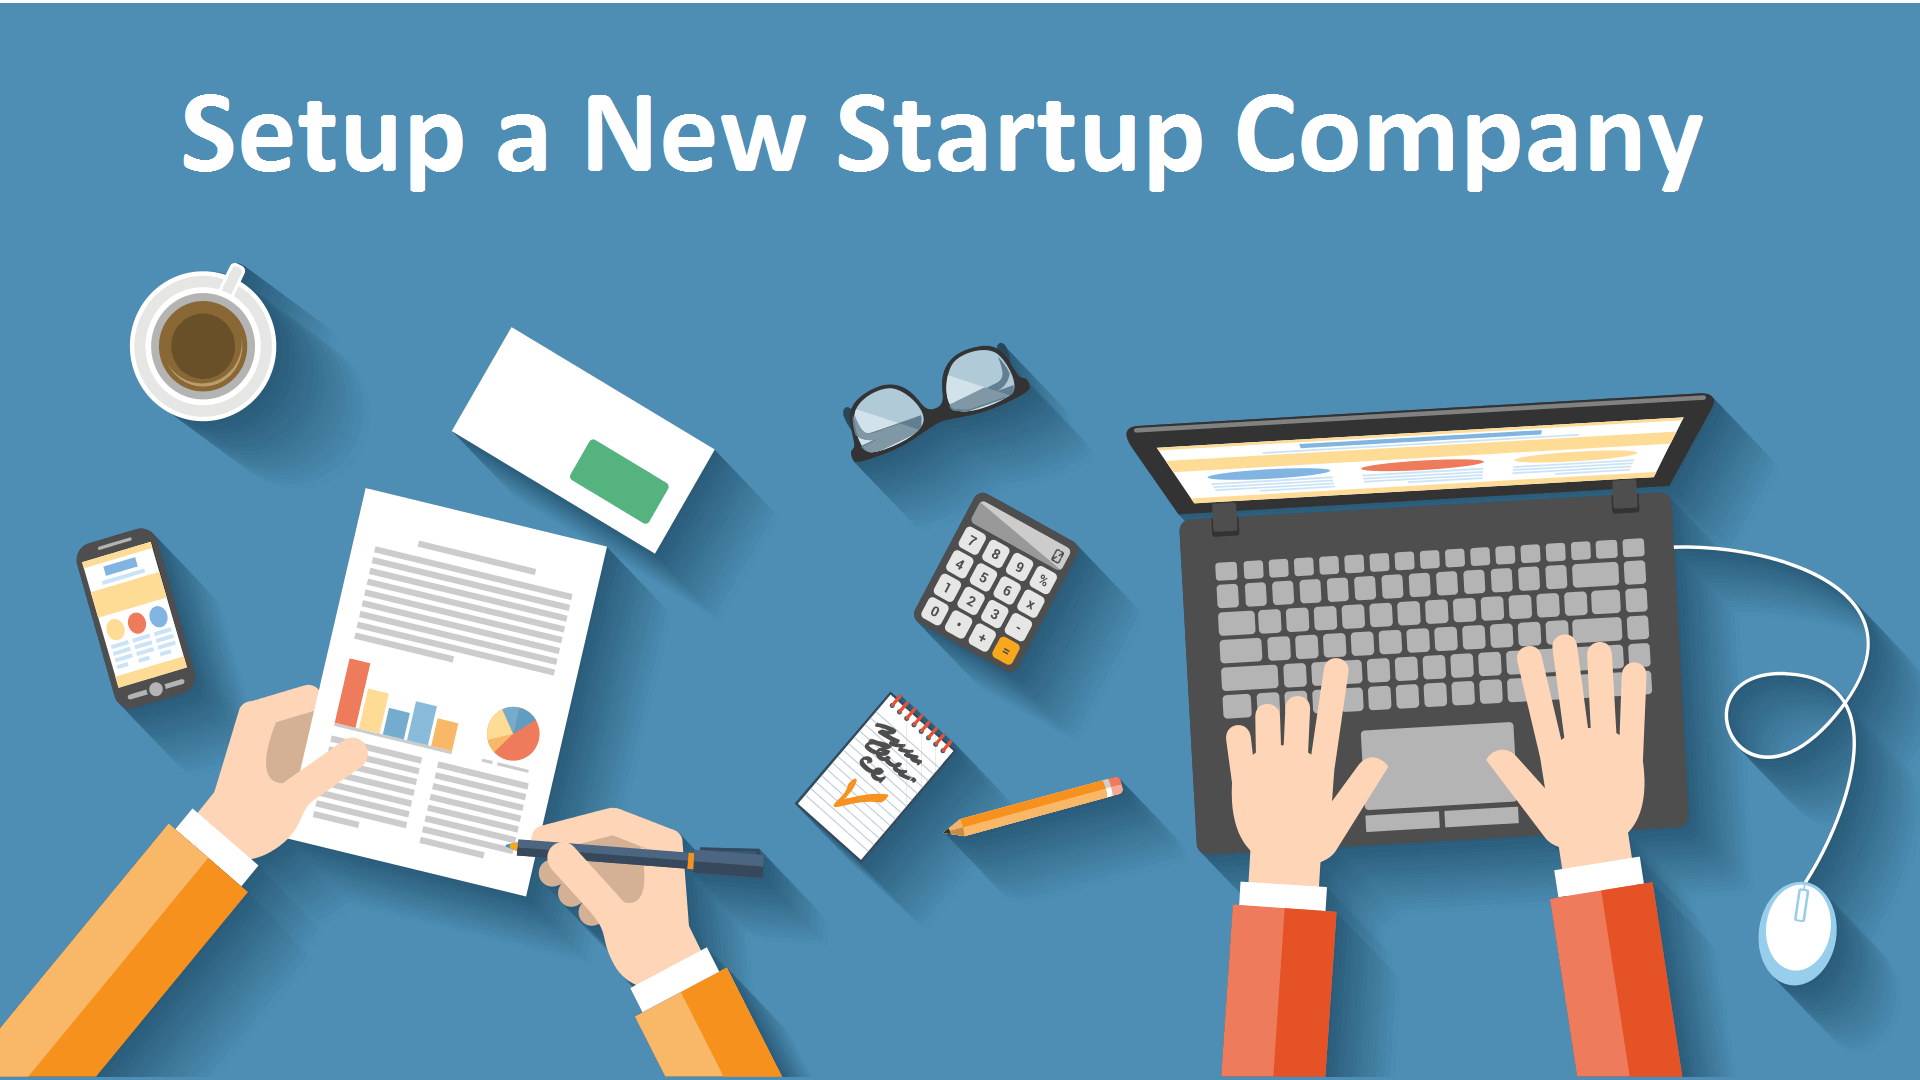 What are the Steps to Setup a New Startup Company in Bangalore?